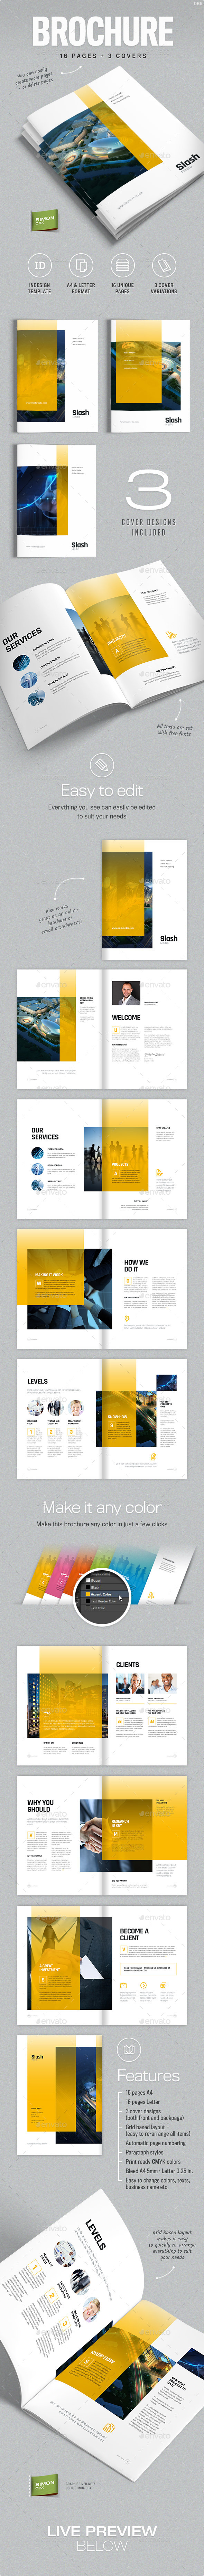 Brochure Template A4 and Letter - Slash - Corporate Brochures